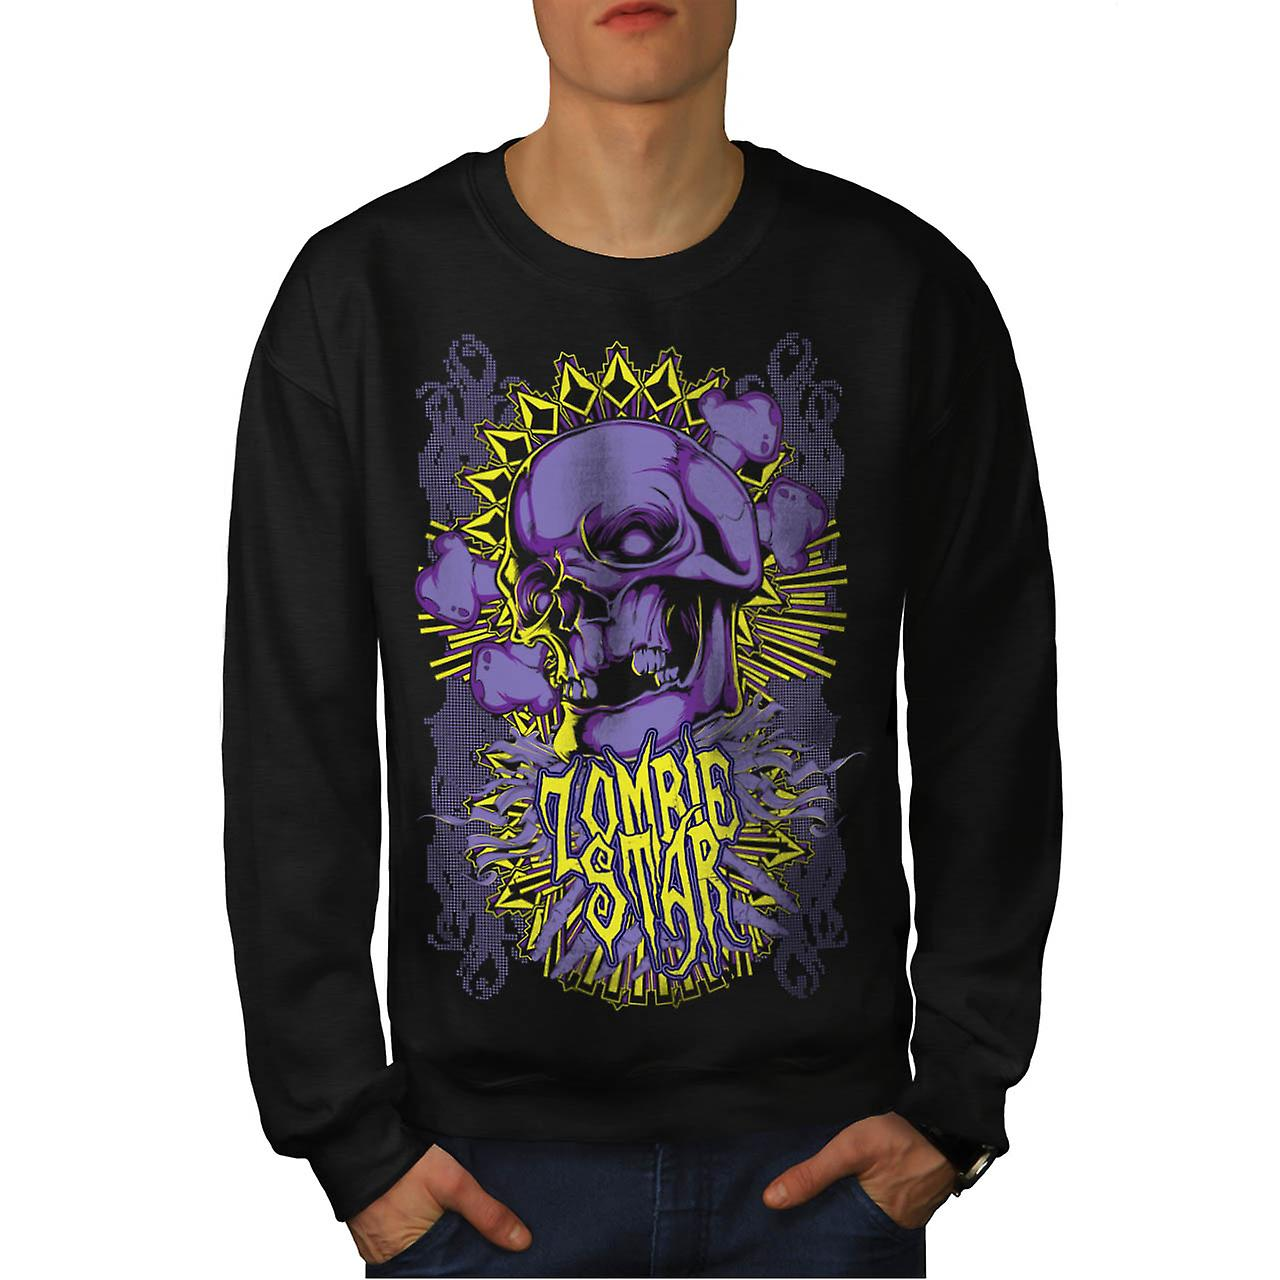 Monster Zombie Star Devils Zone Men Black Sweatshirt | Wellcoda